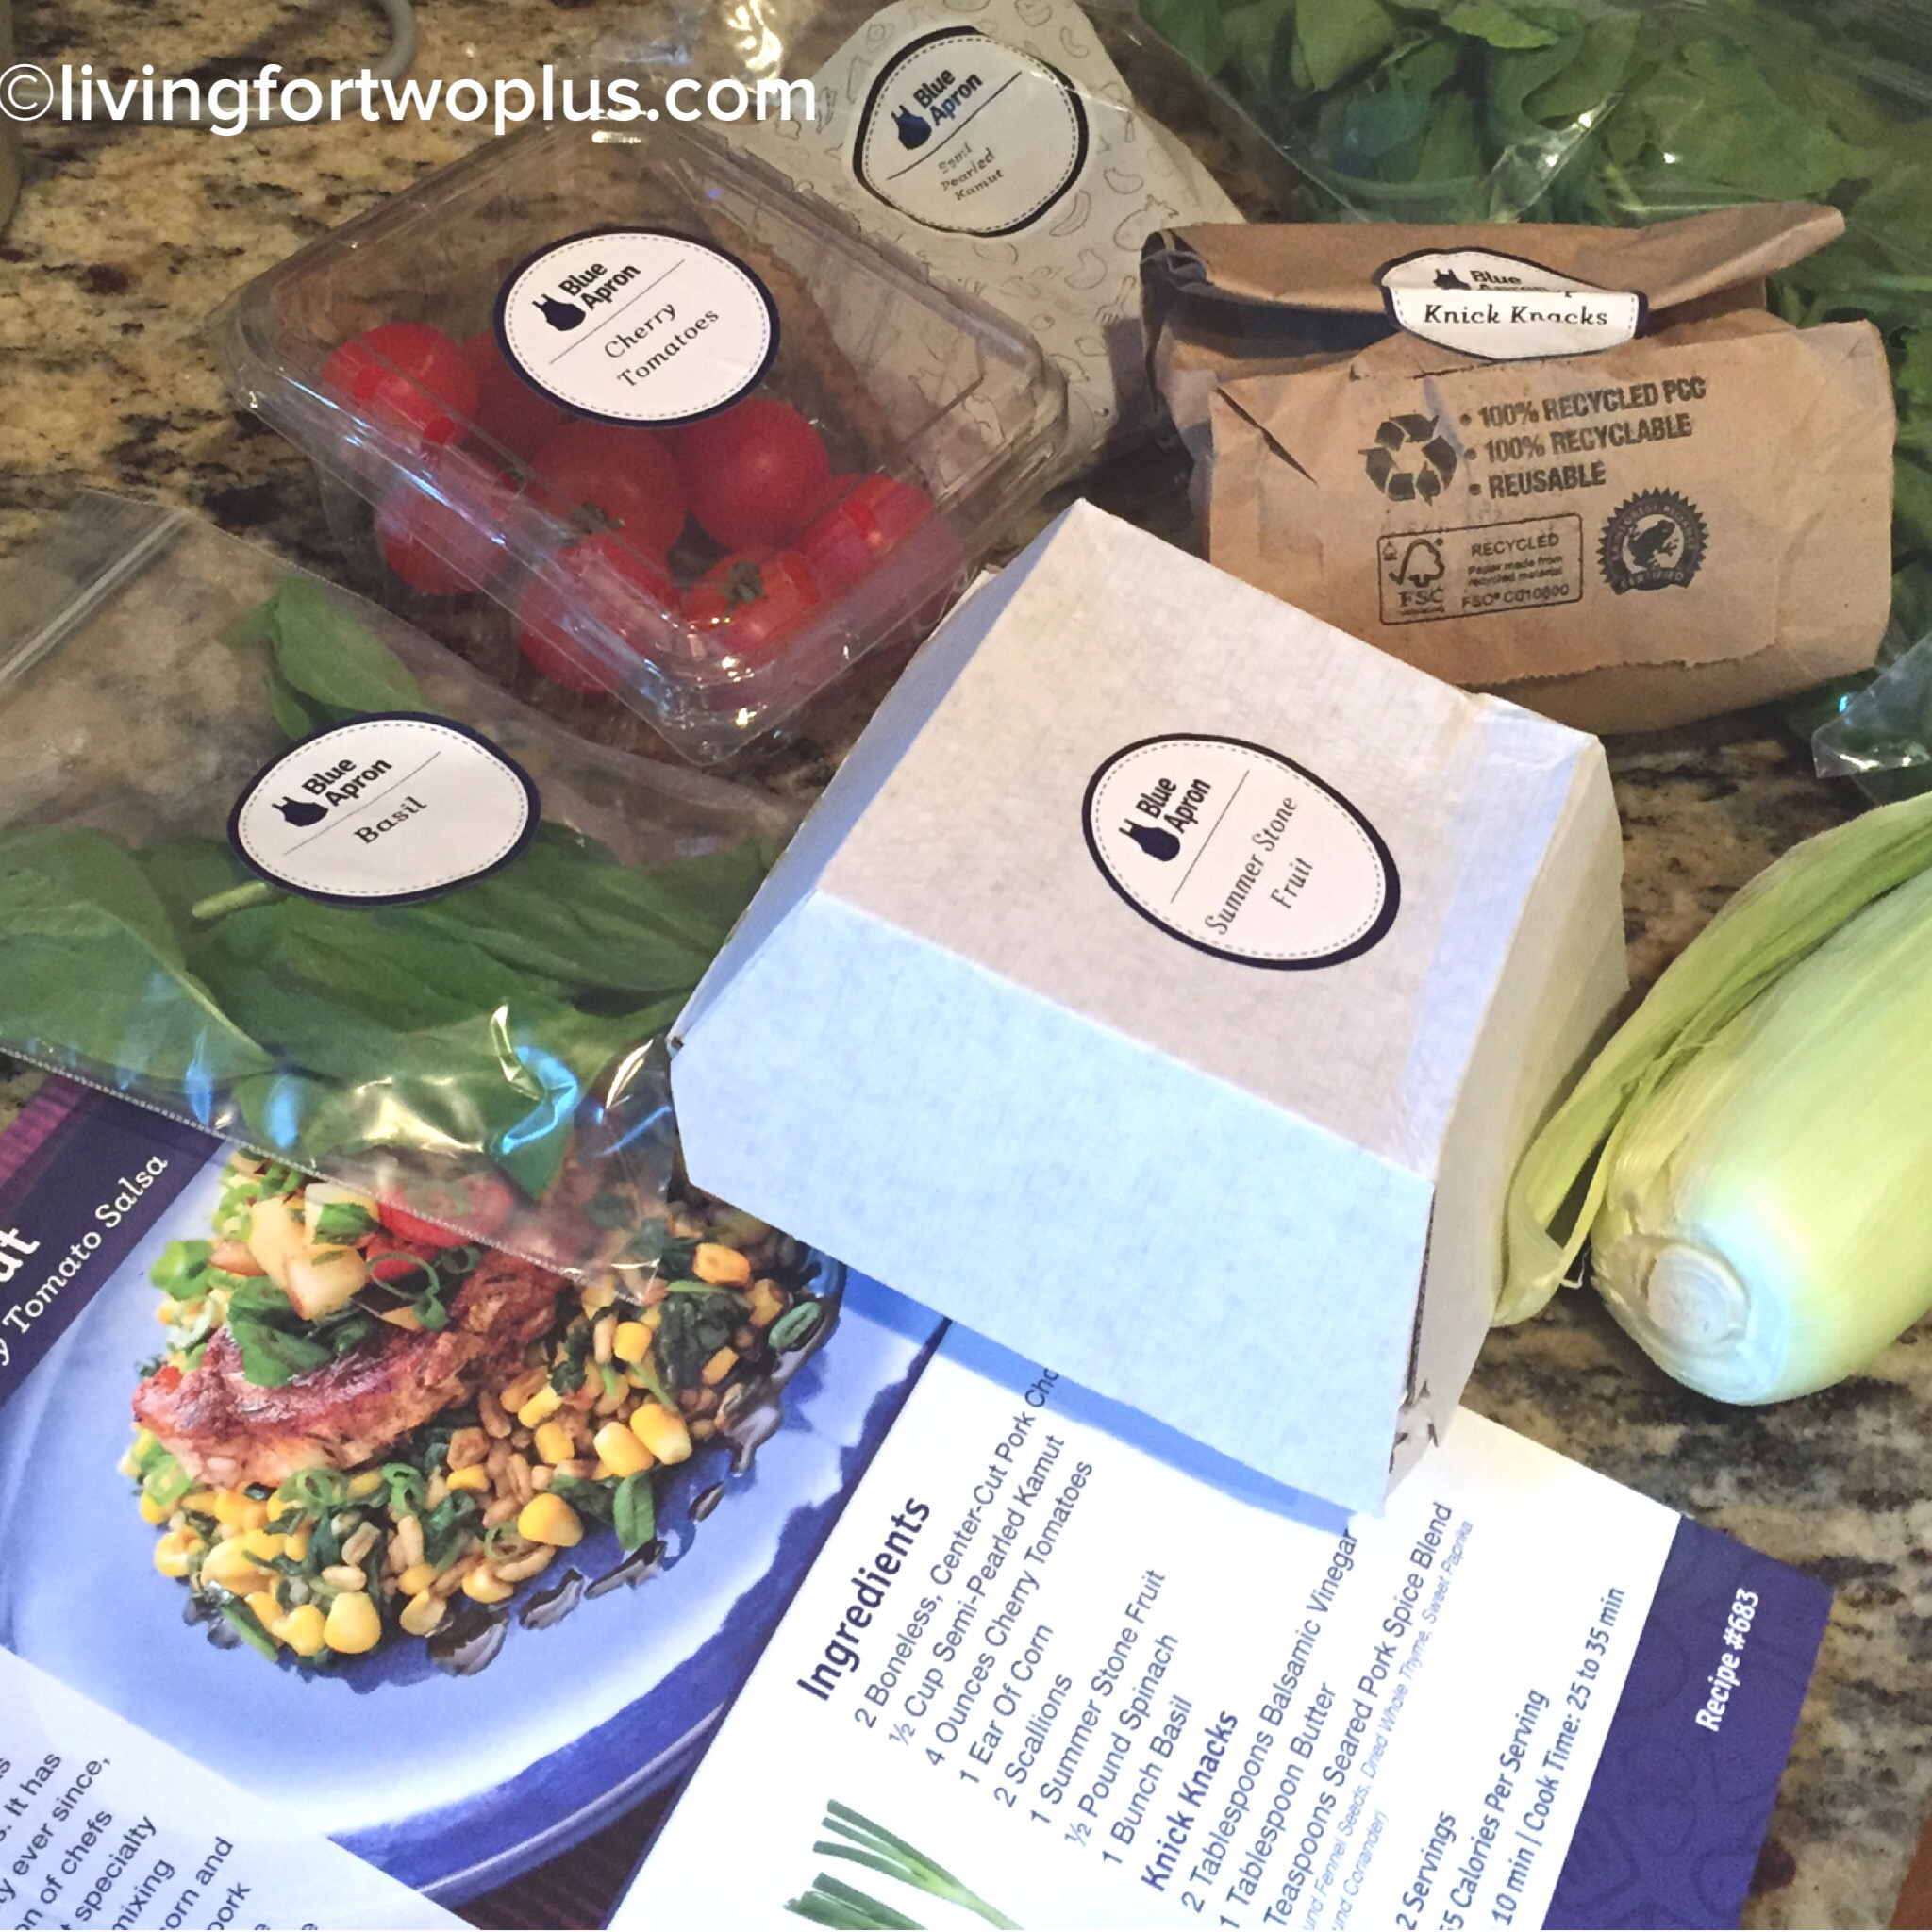 Blue apron promo code - Separate From The Meats Were Various Vegetables And Knick Knacks All Labeled And Perfectly Measured For Their Corresponding Recipes